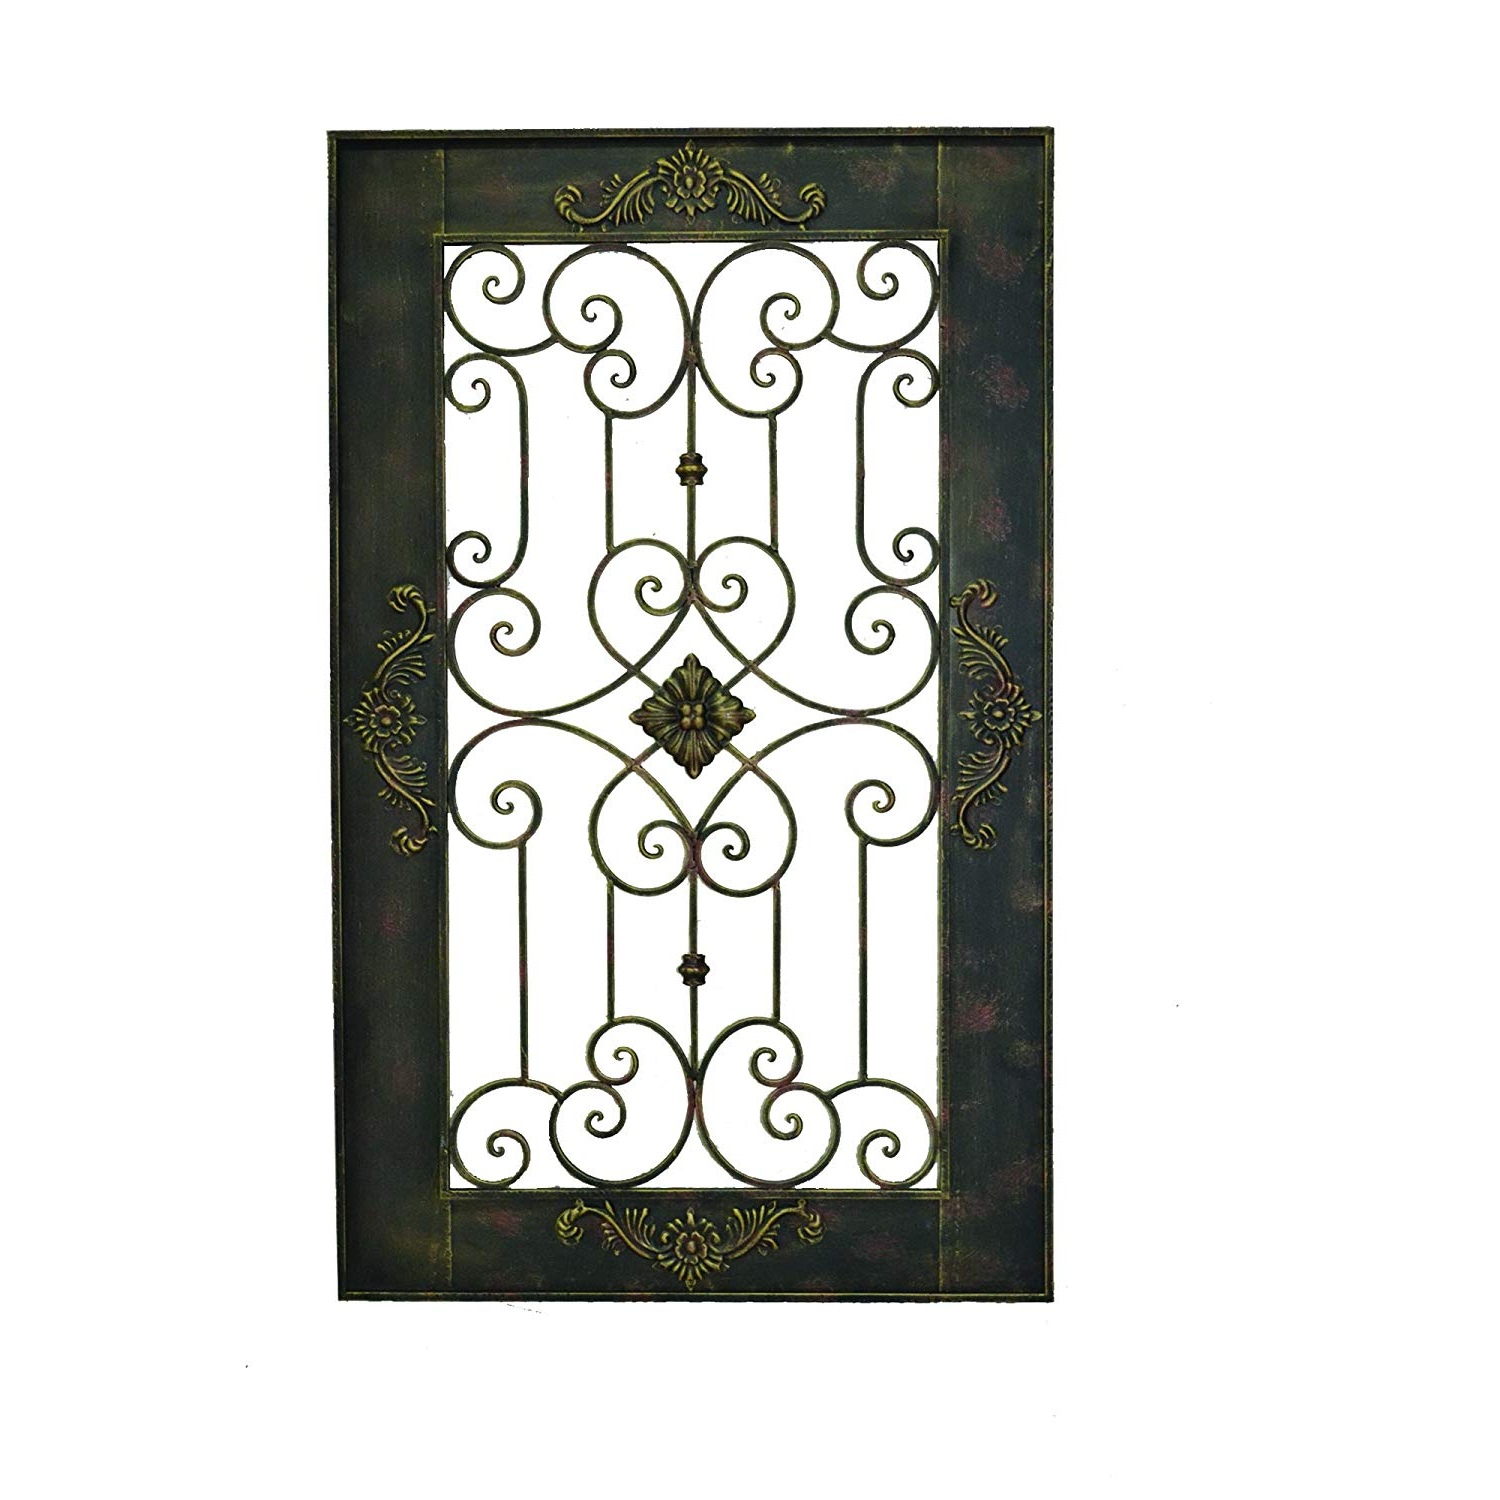 Oil Rubbed Metal Wall Decor Pertaining To Fashionable Amazon: Yosemite Home Decor Yacce Y14719 Iron Wall Decor, Black (View 14 of 20)